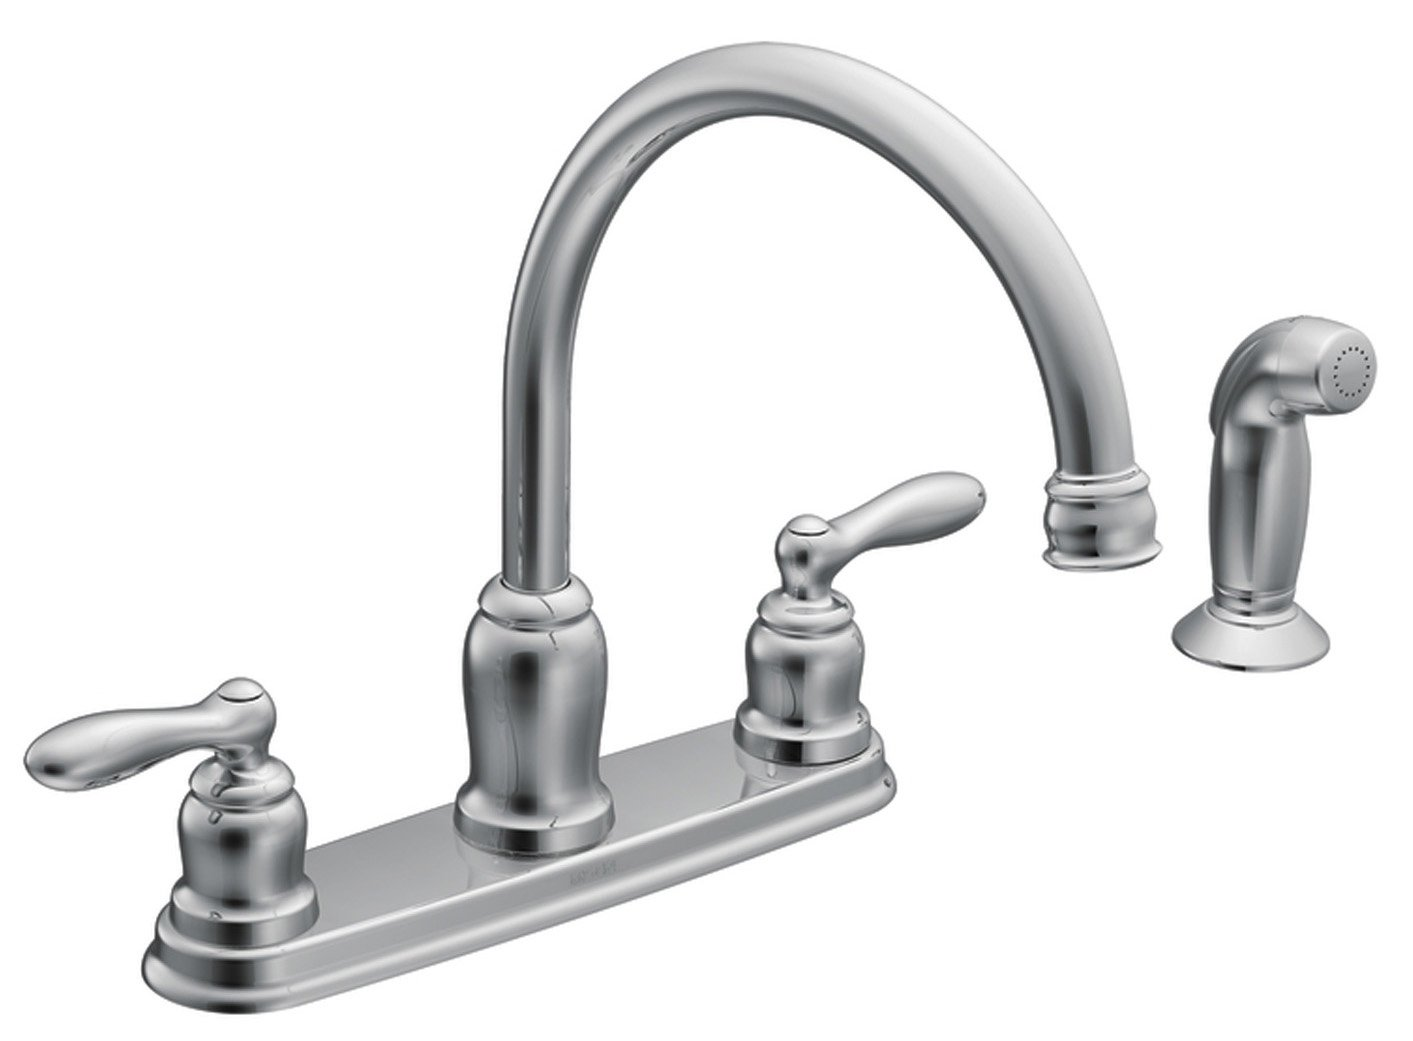 amazon com moen ca87888 high arc kitchen faucet from the caldwell amazon com moen ca87888 high arc kitchen faucet from the caldwell collection chrome moen home improvement